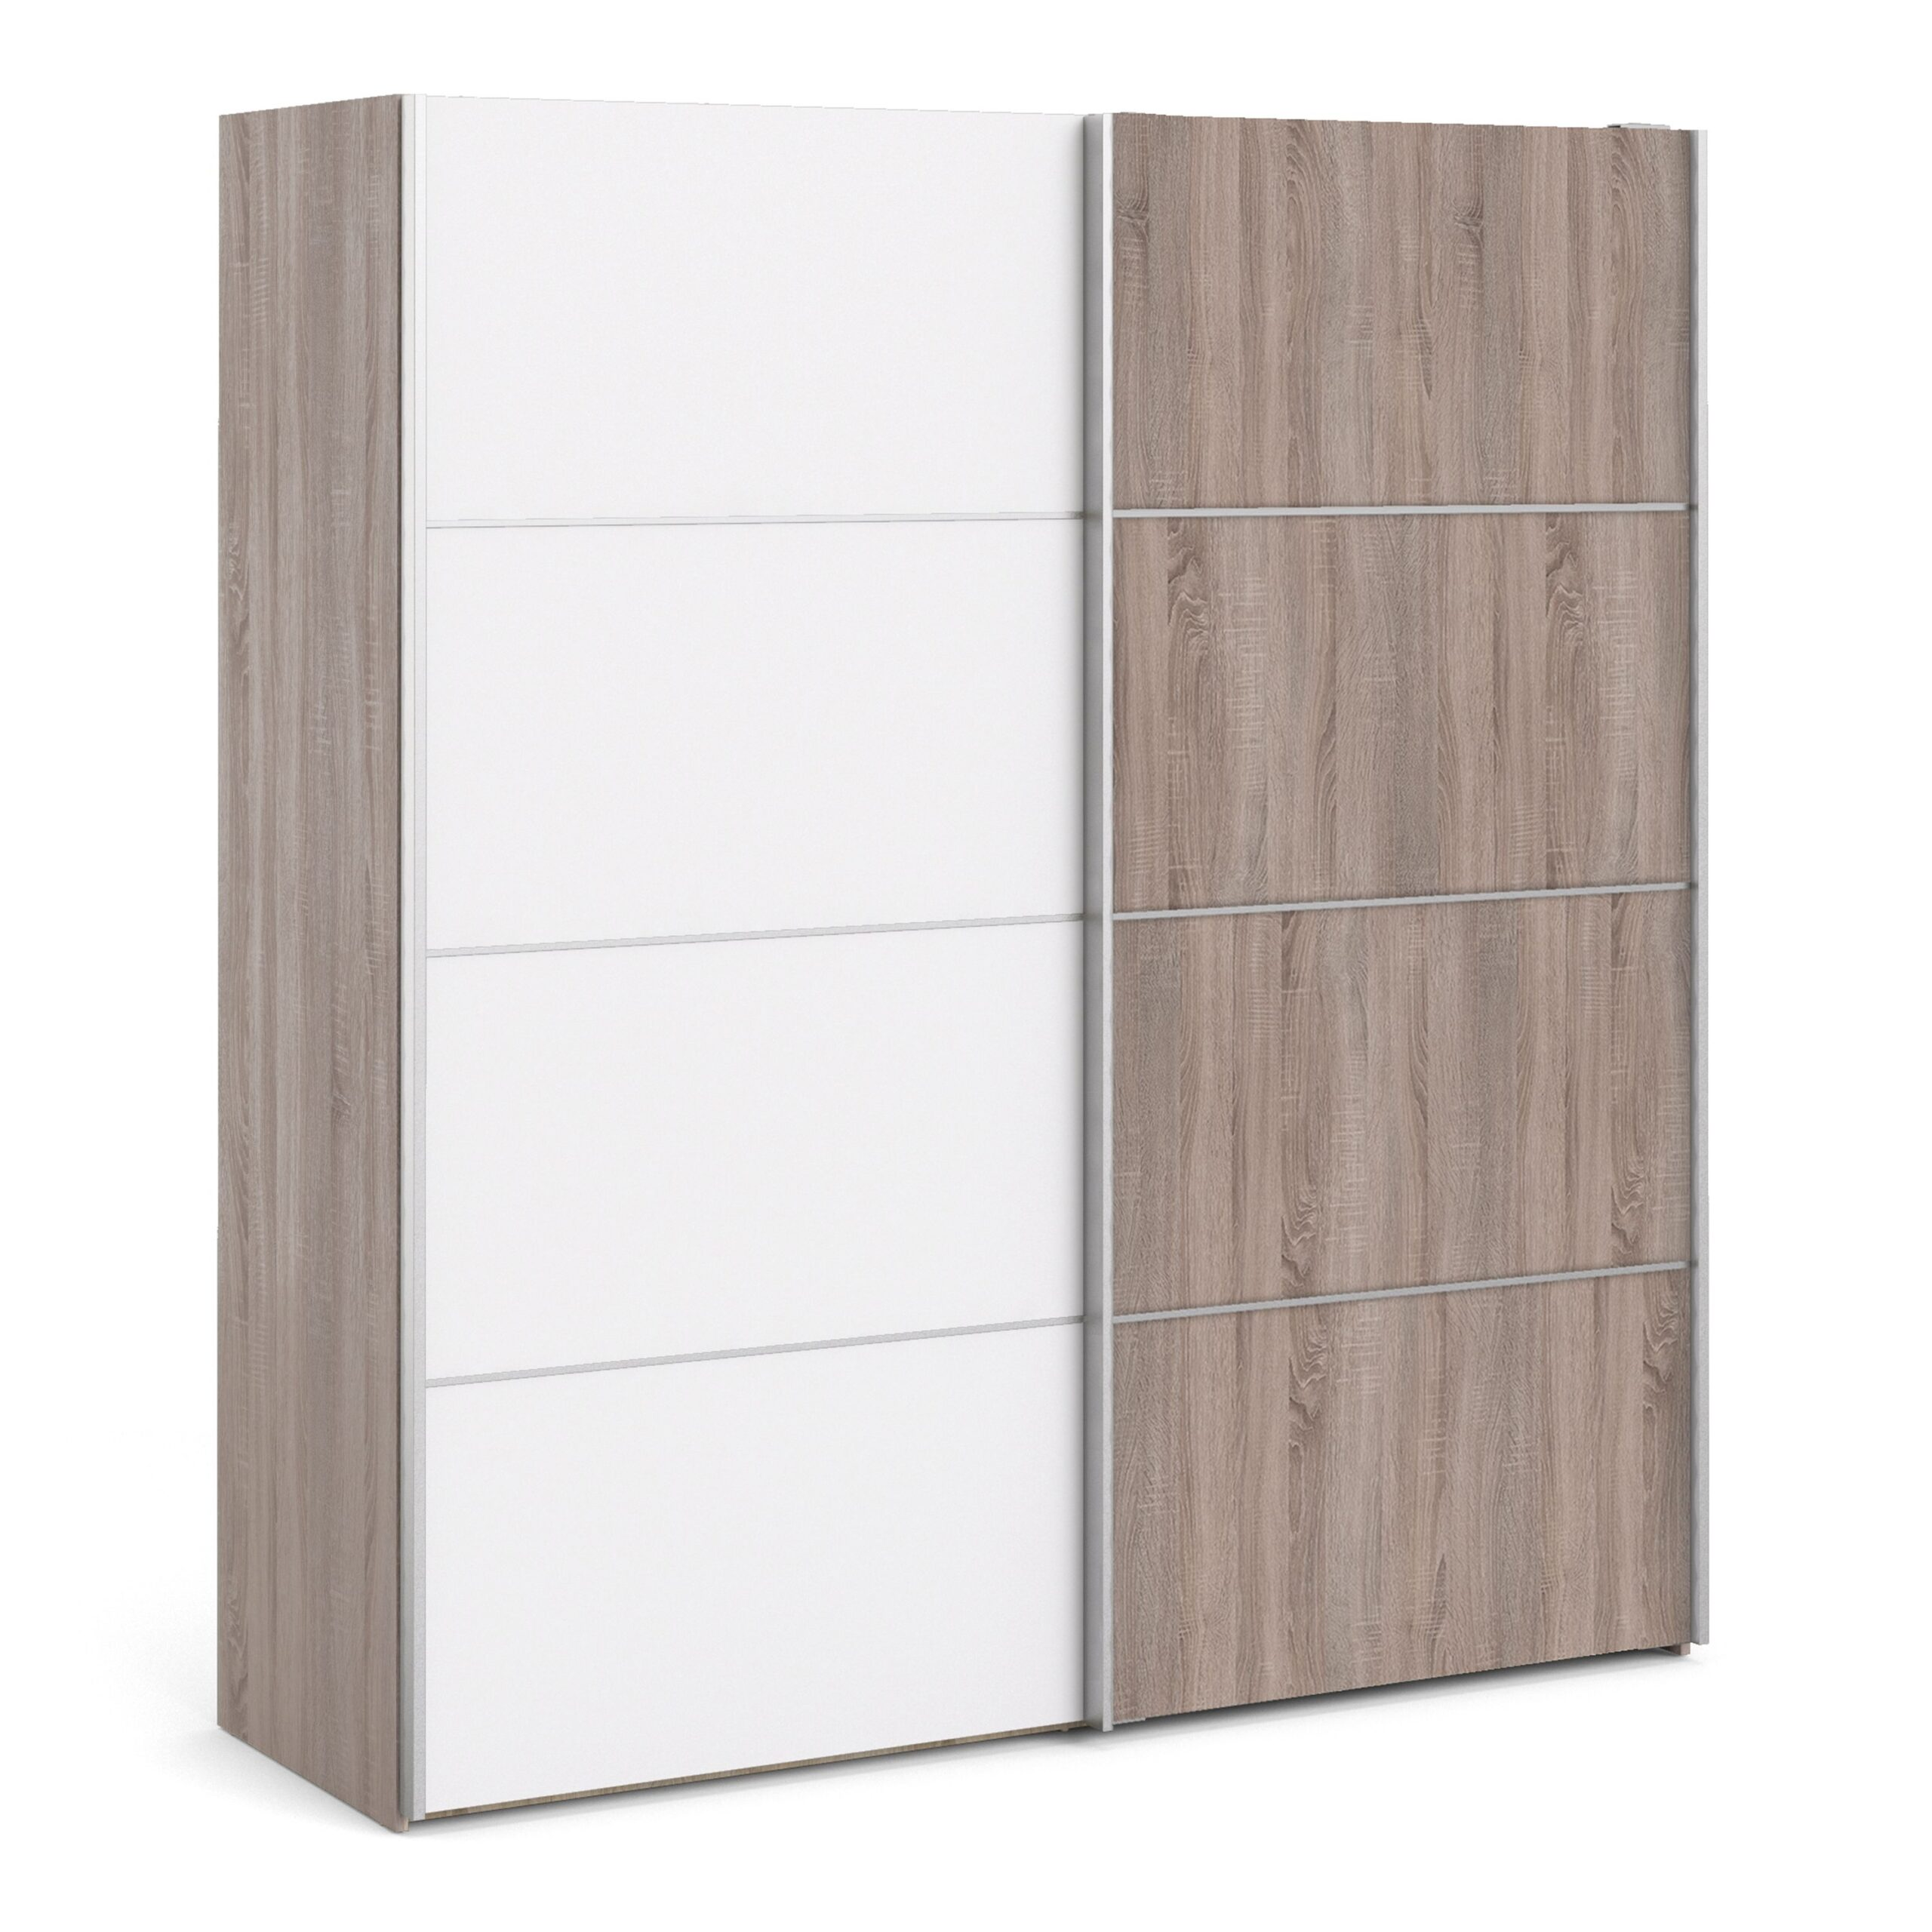 Phillipe Sliding Wardrobe 180cm in Truffle Oak with White and Truffle Oak doors with 5 Shelves